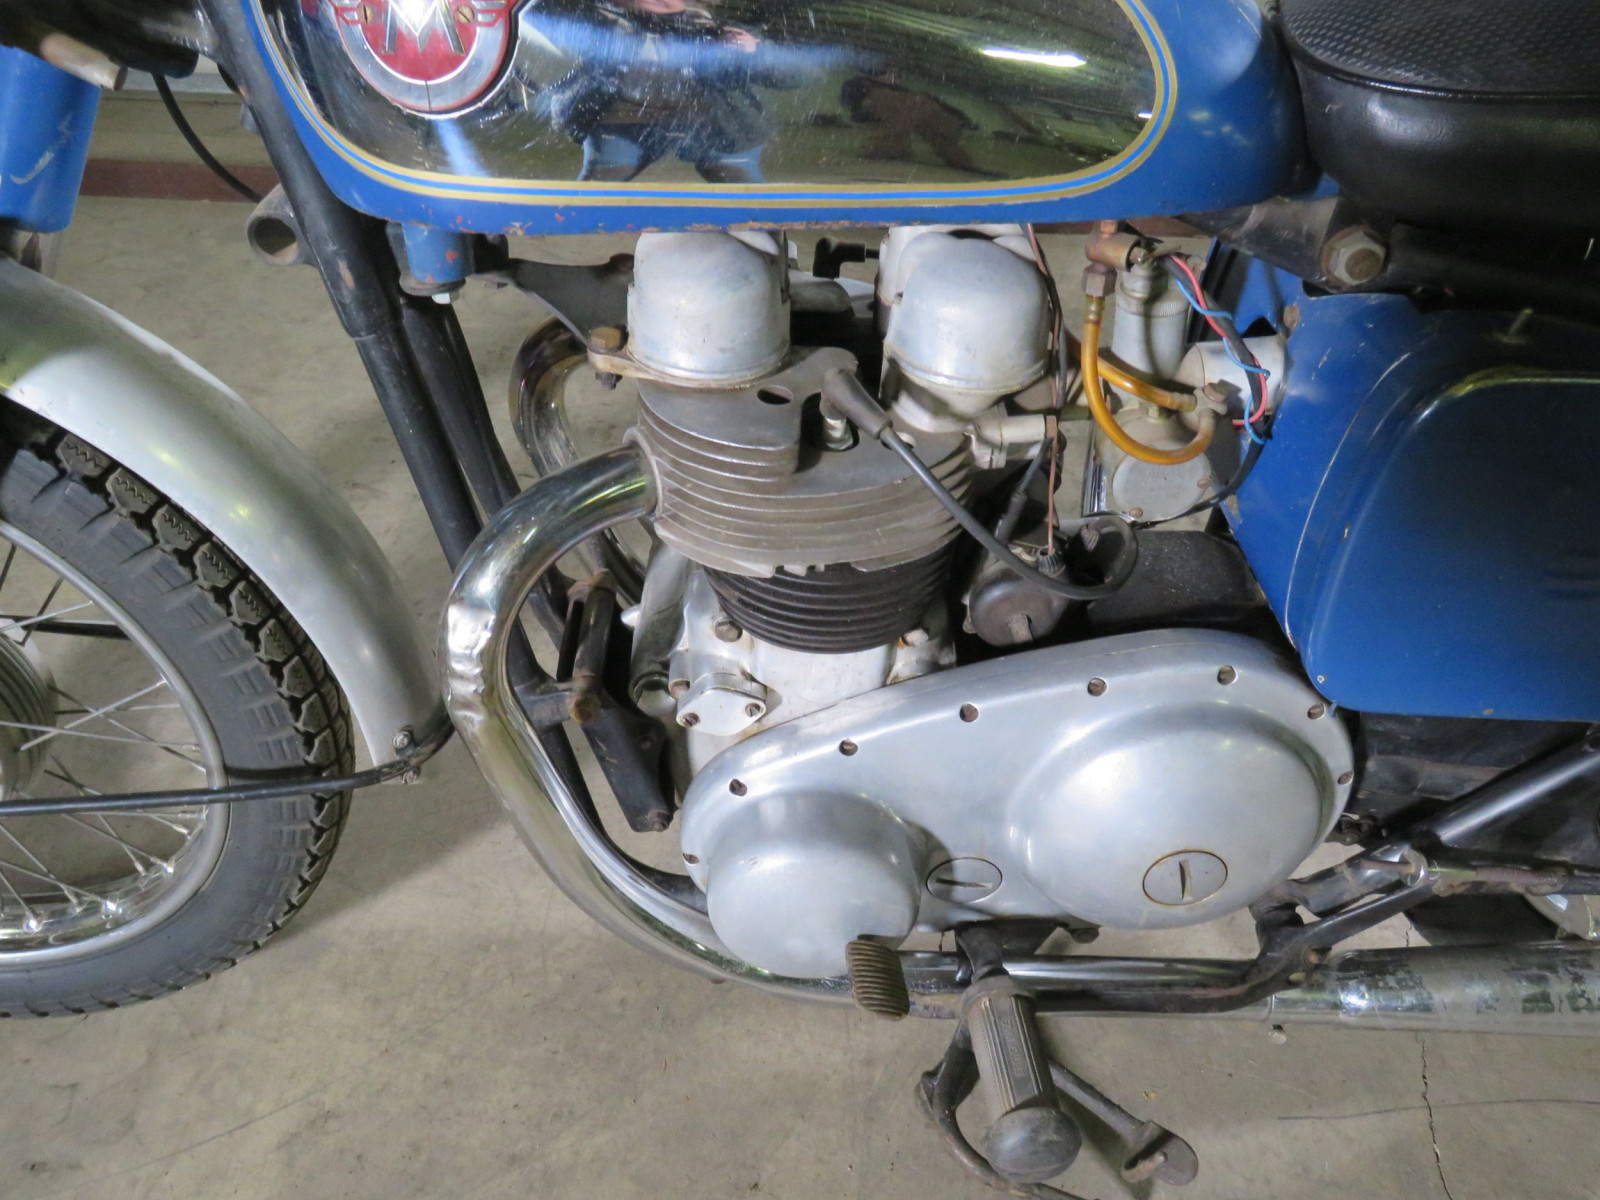 1962 Matchless G12 Motorcycle - Image 7